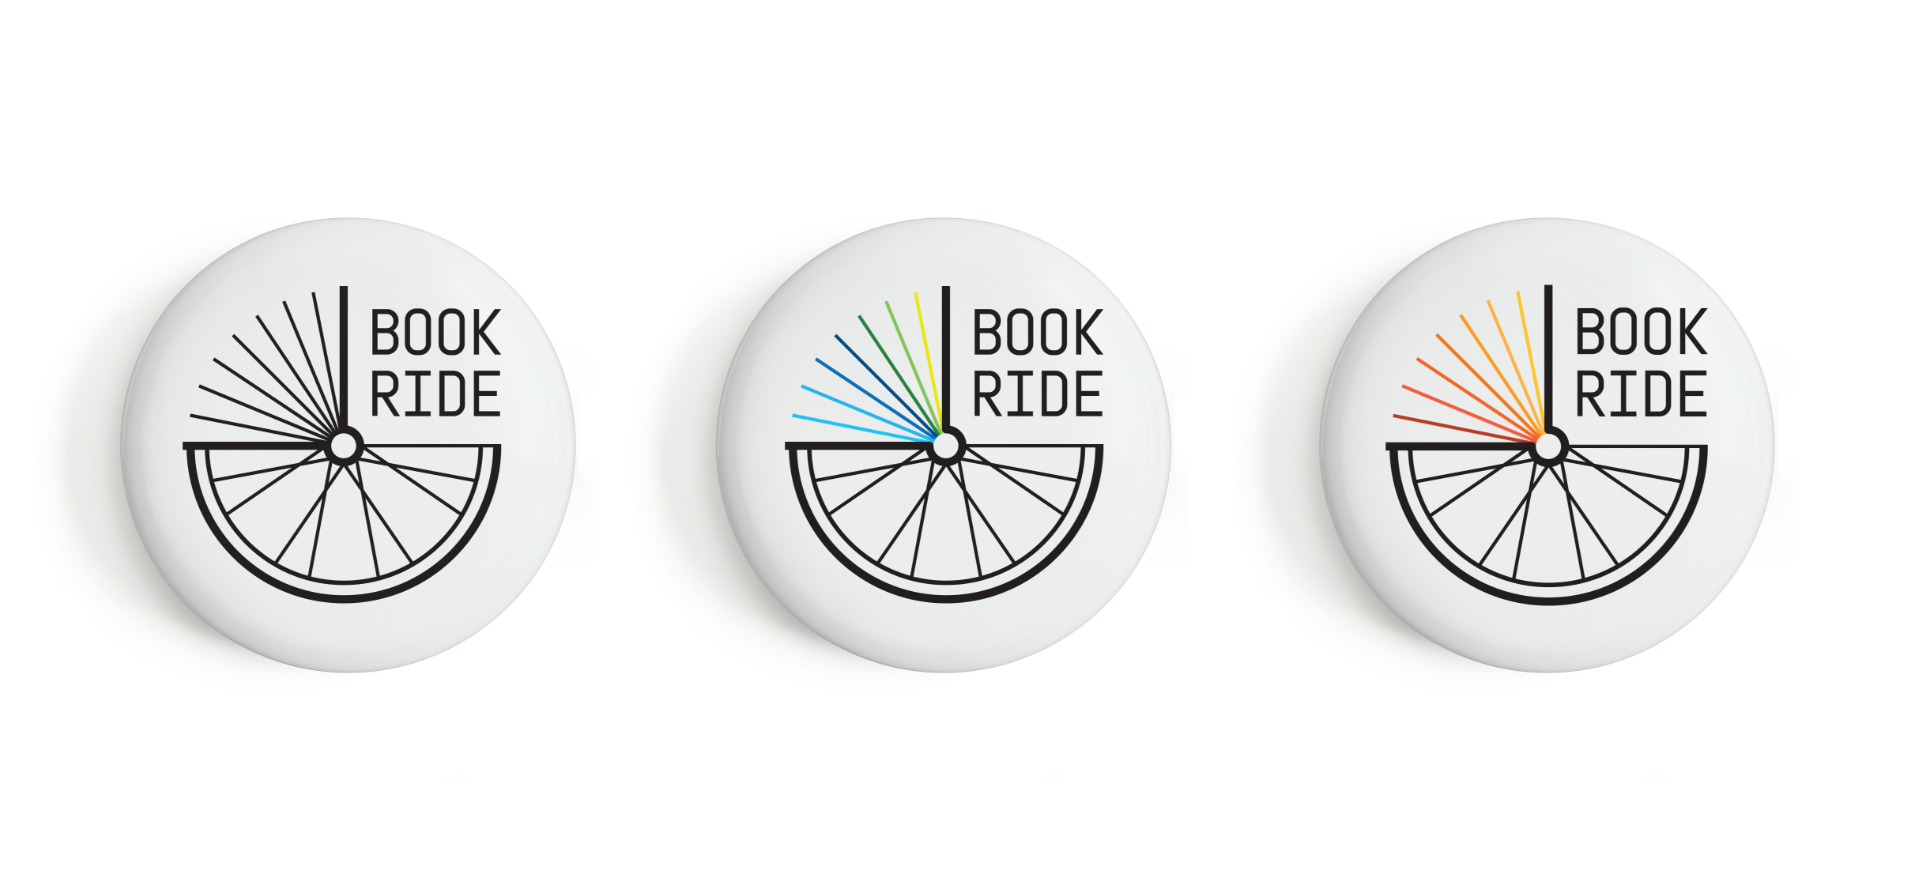 The reading line logo variations on three white button mock-ups